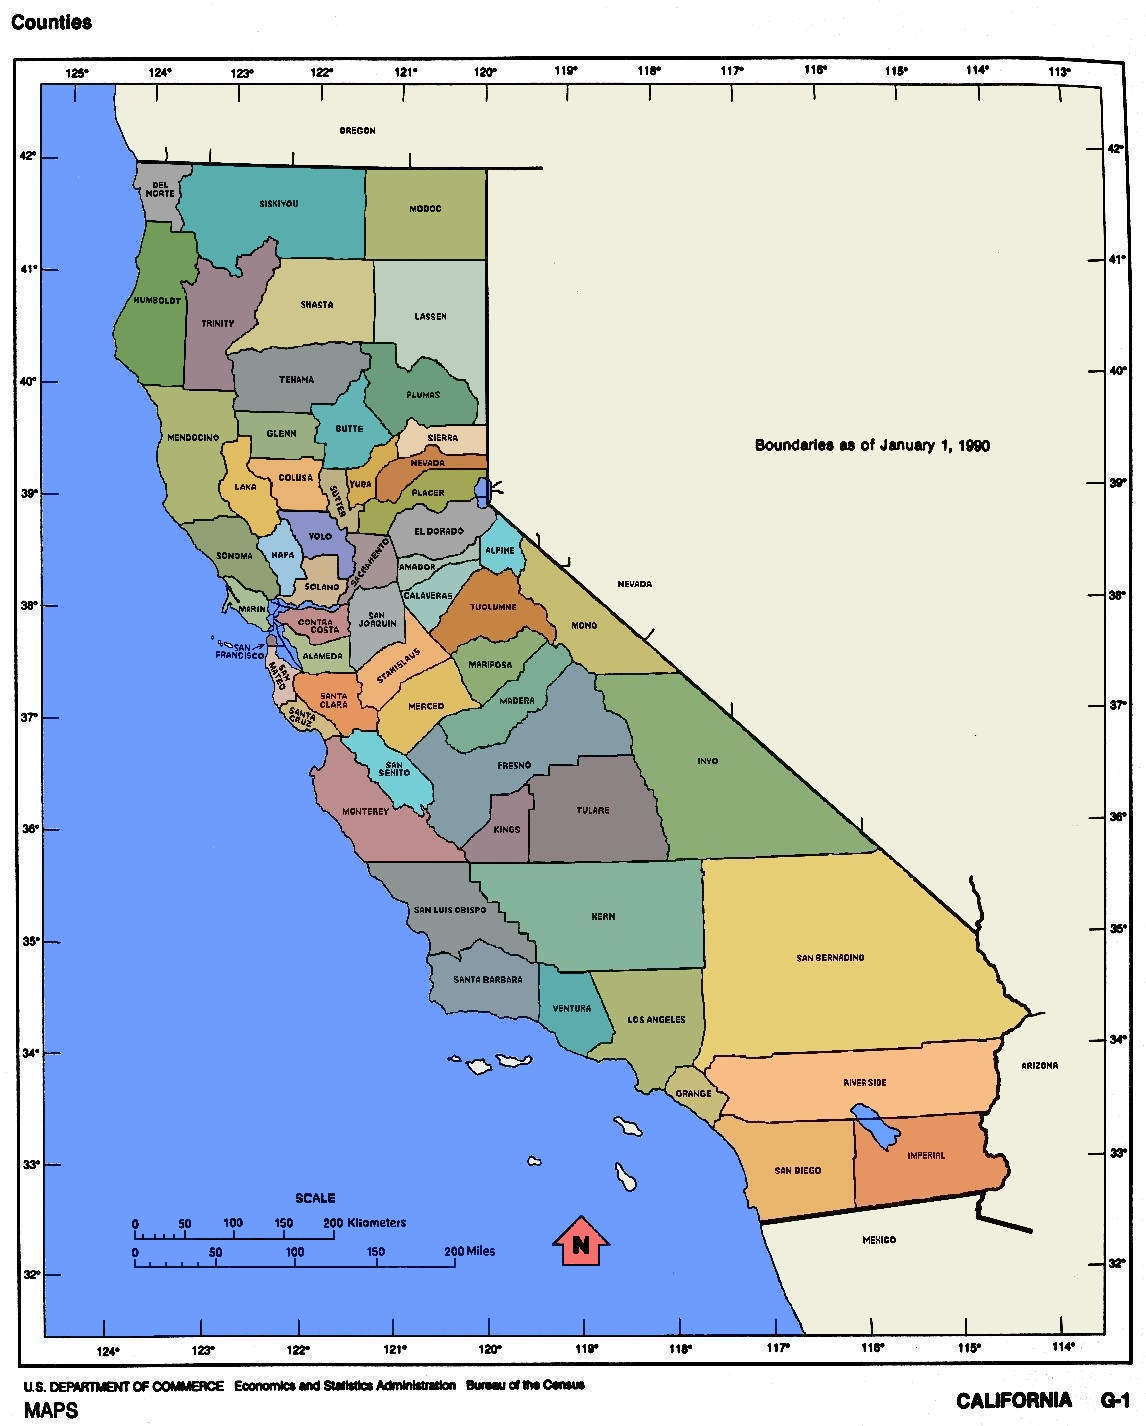 File:California Map.jpg - Wikipedia